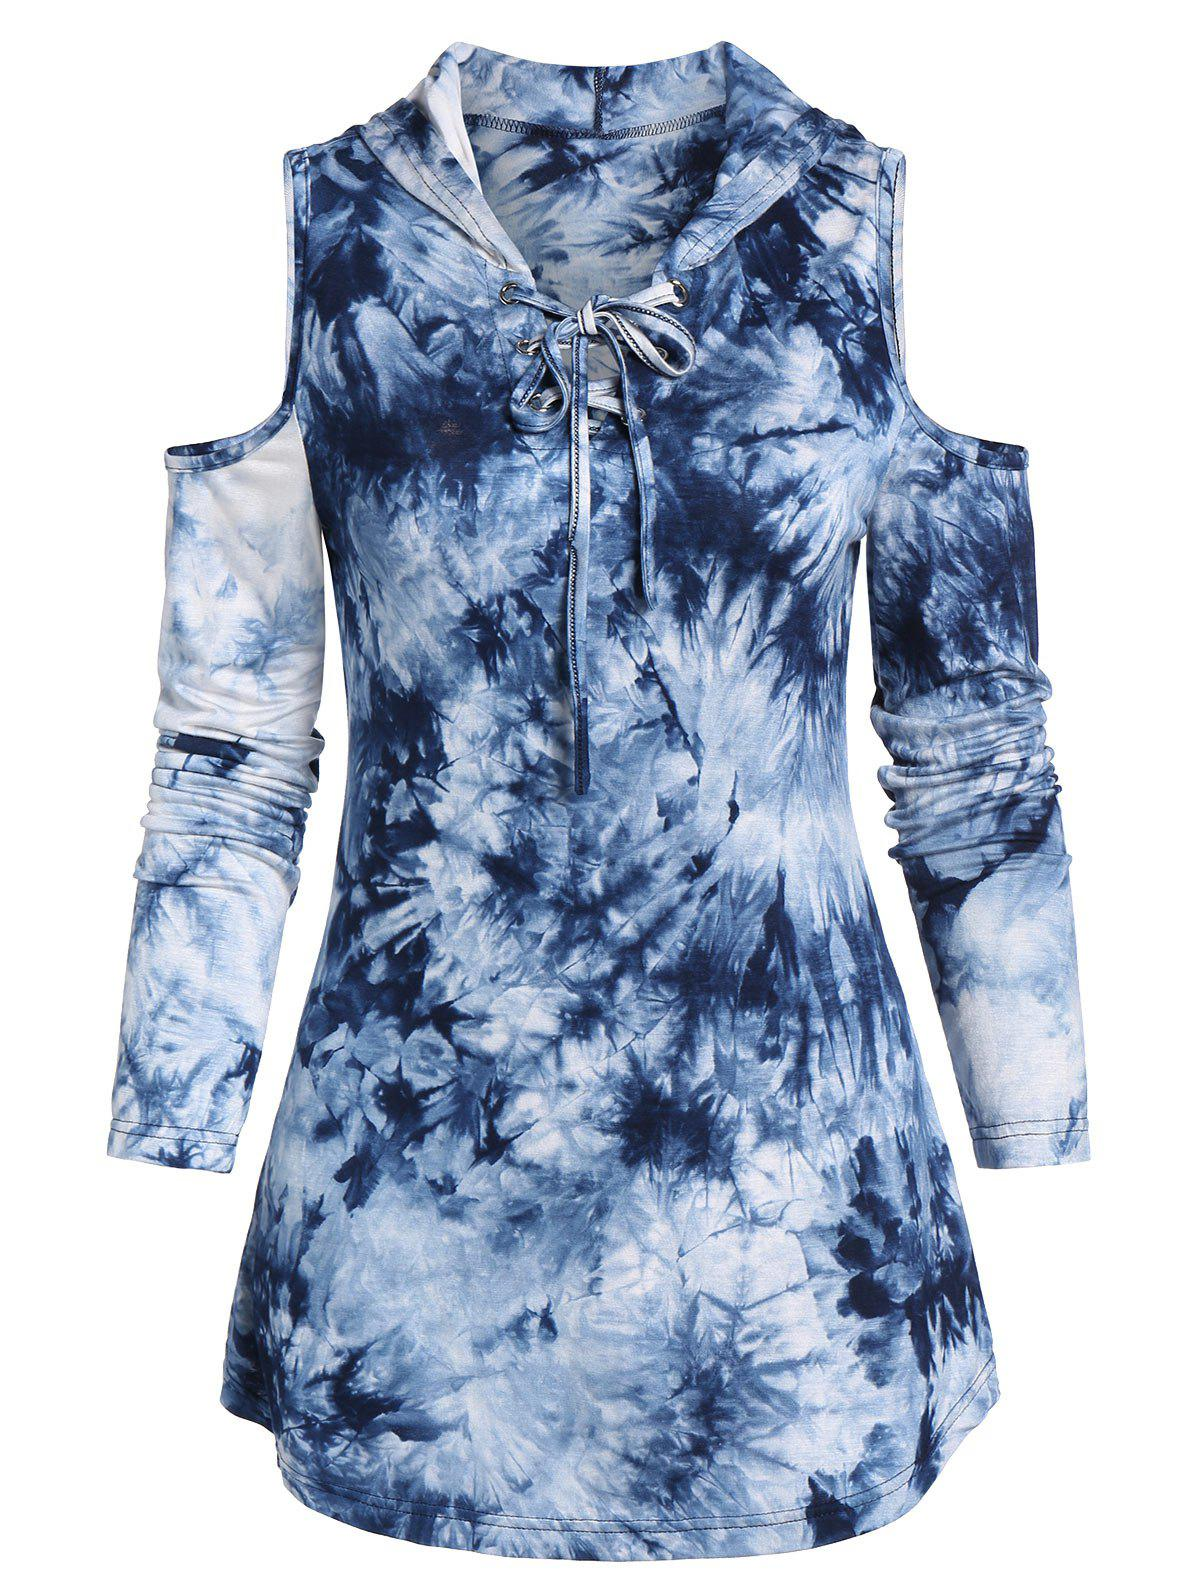 Trendy Cold Shoulder Lace-up Tie Dye Print Hooded T-shirt